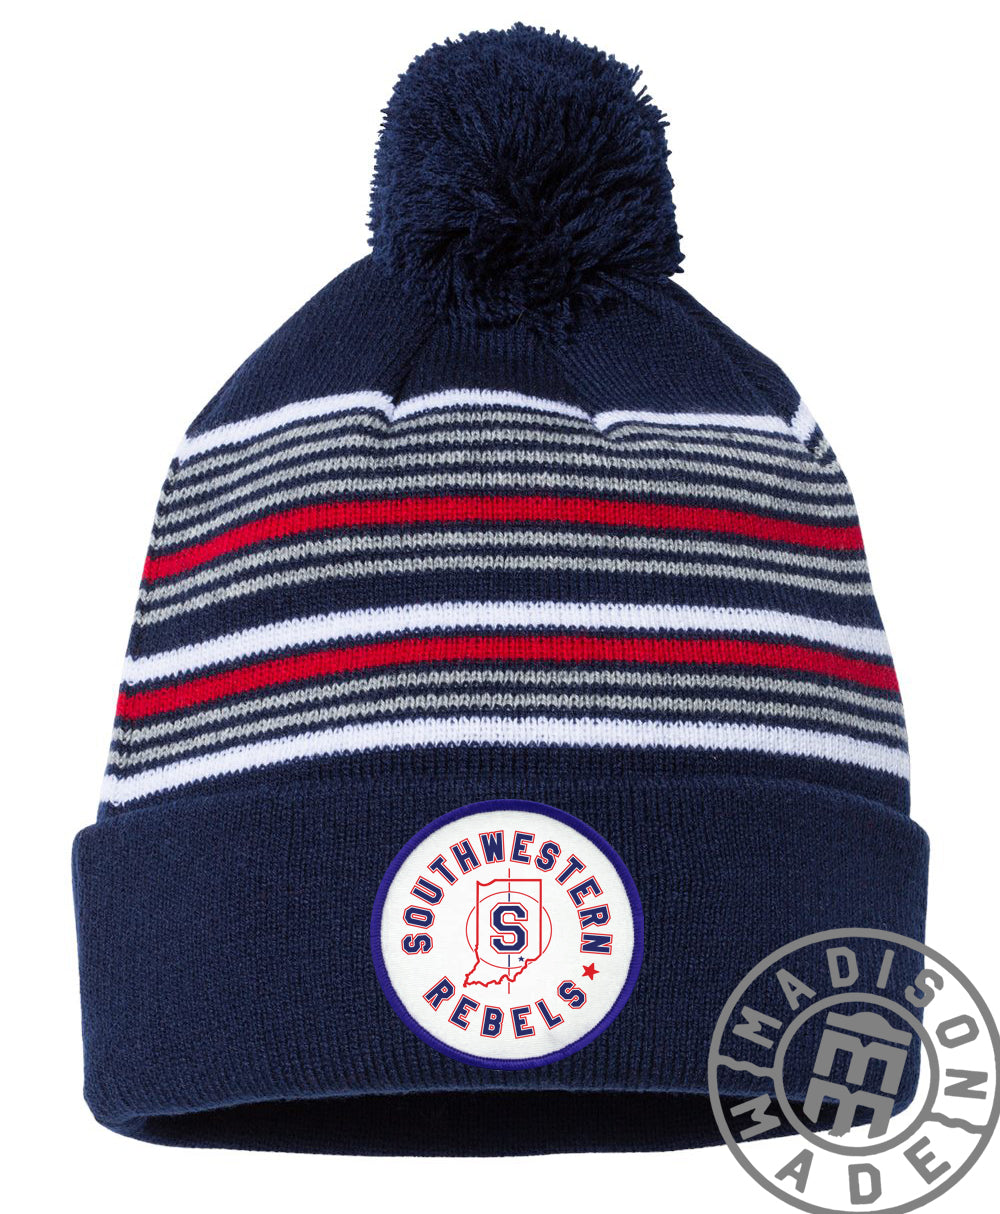 Southwestern Navy Striped Beanie